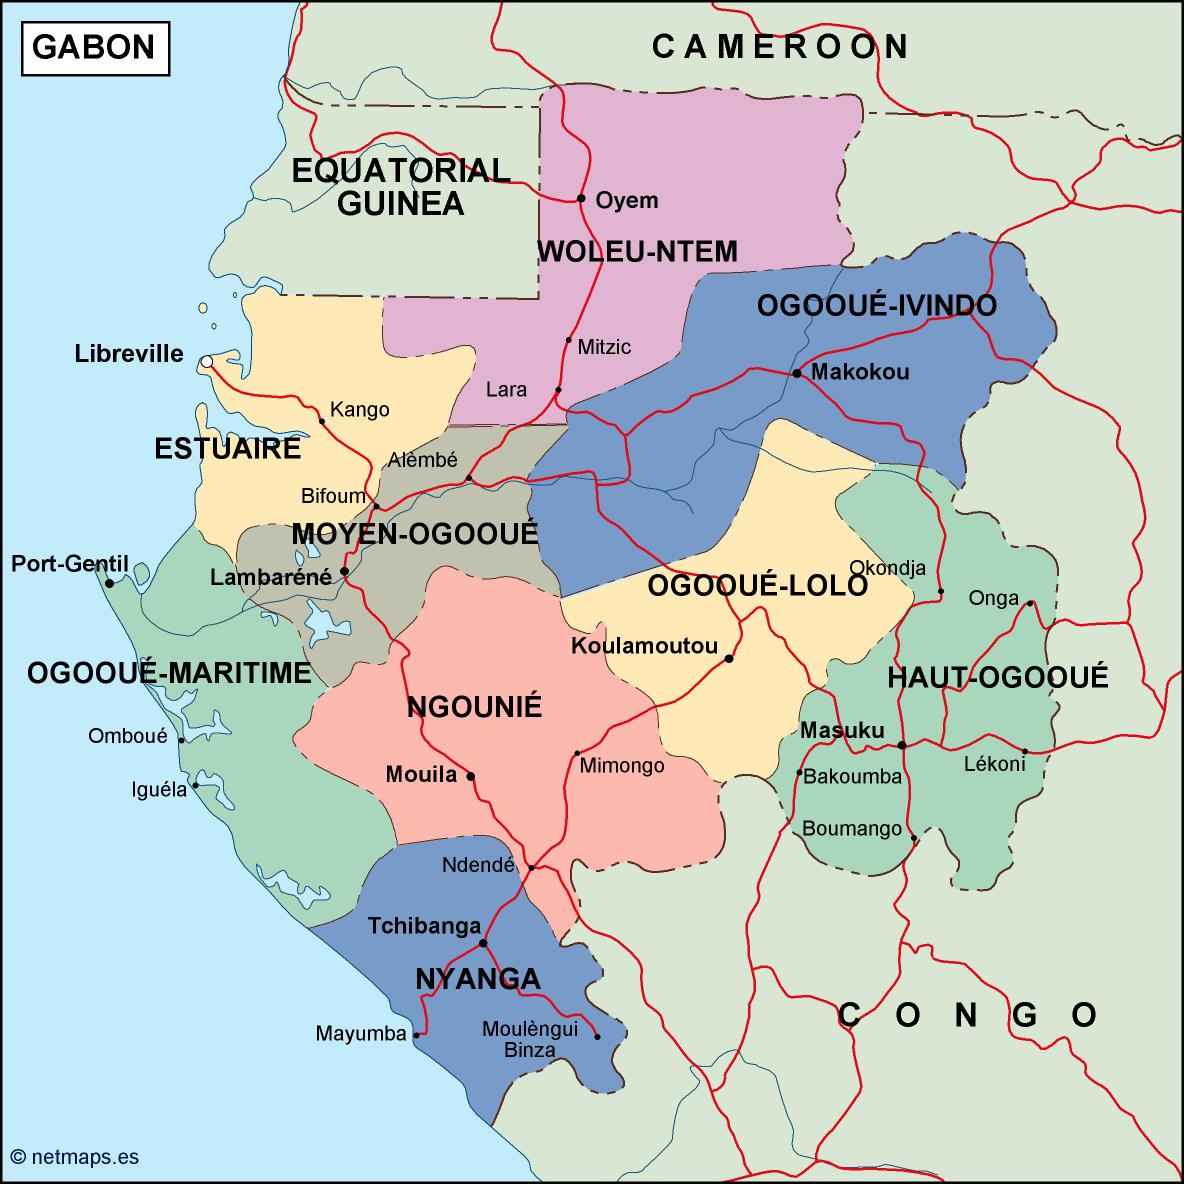 gabon political map on bismarck archipelago on map, eastern africa on map, burkina faso on map, saint vincent and the grenadines on map, uganda on map, kingdom of bahrain on map, republic of georgia on map, botswana on map, northern rhodesia on map, mauritius on map, benelux on map, brazilia on map, people's republic of china on map, british somaliland on map, gambia on map, tasmania australia on map, west indies islands on map, german southwest africa on map, sudan on map, lesotho on map,